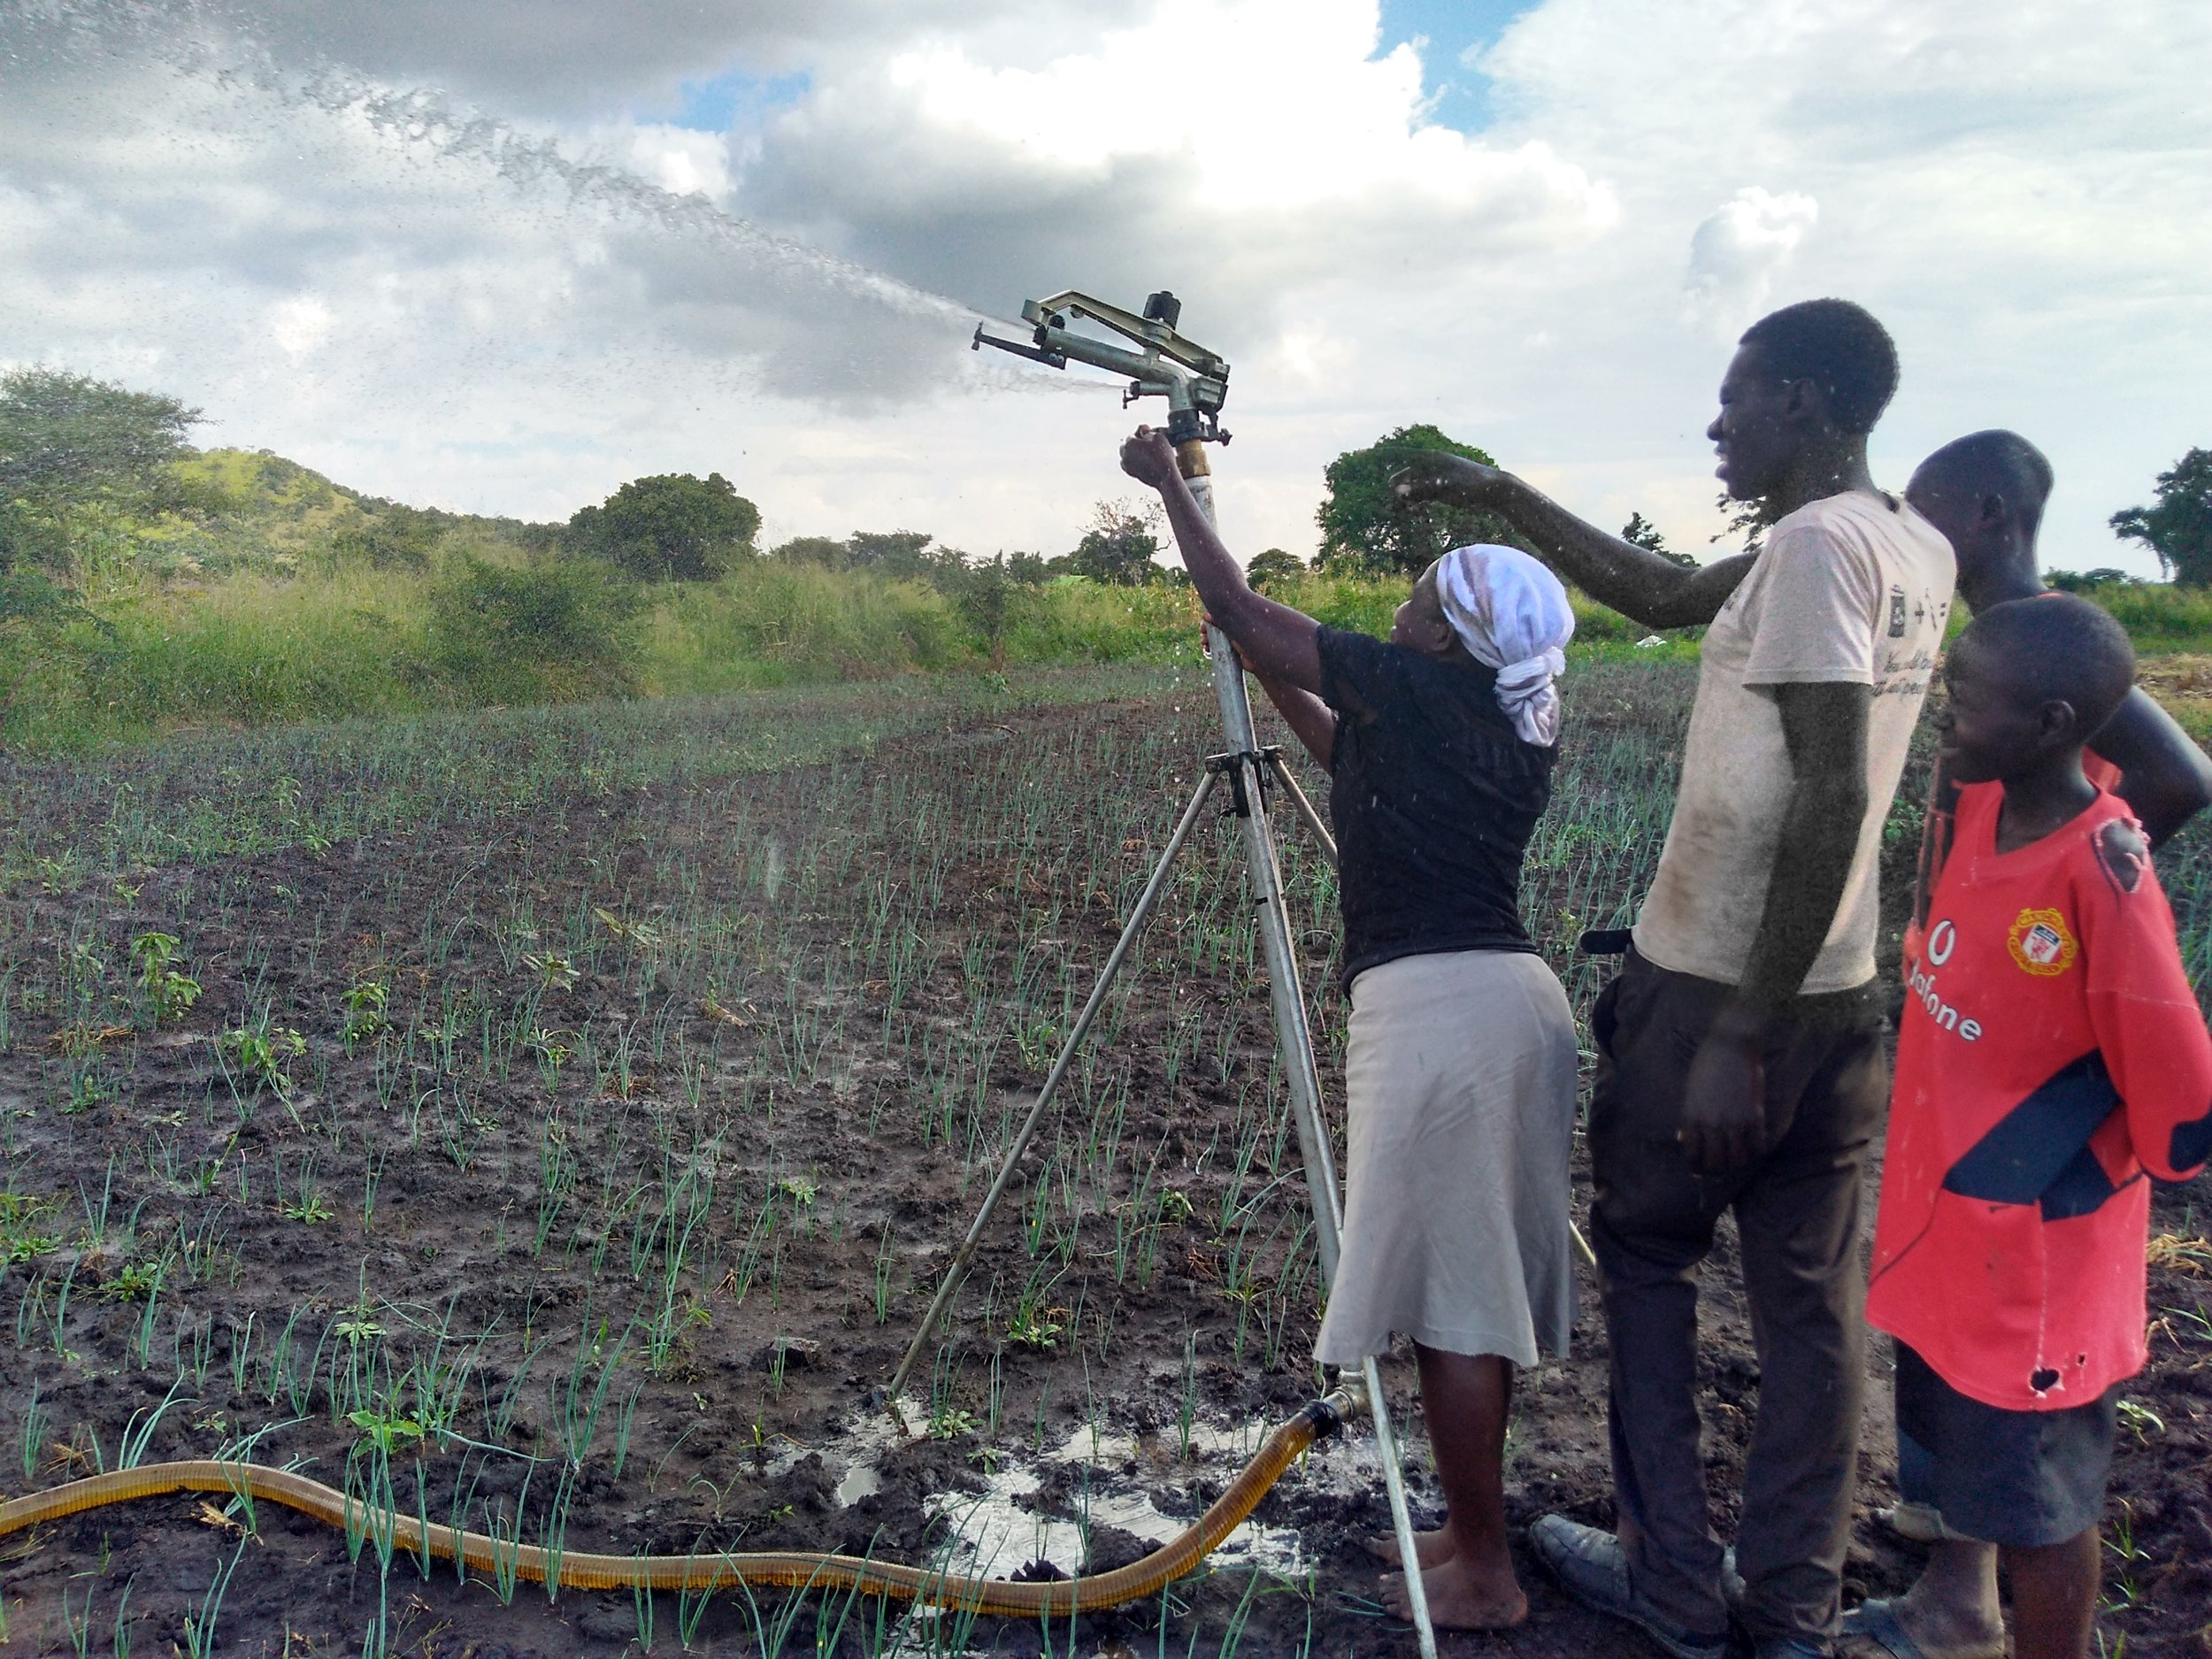 Horticulture irrigation group members work together to set the rain gun. This system is supplied with water from Lake Kyoga via a petrol-powered pump and a series of rigid and flexible piping, which members can easily move between plots.